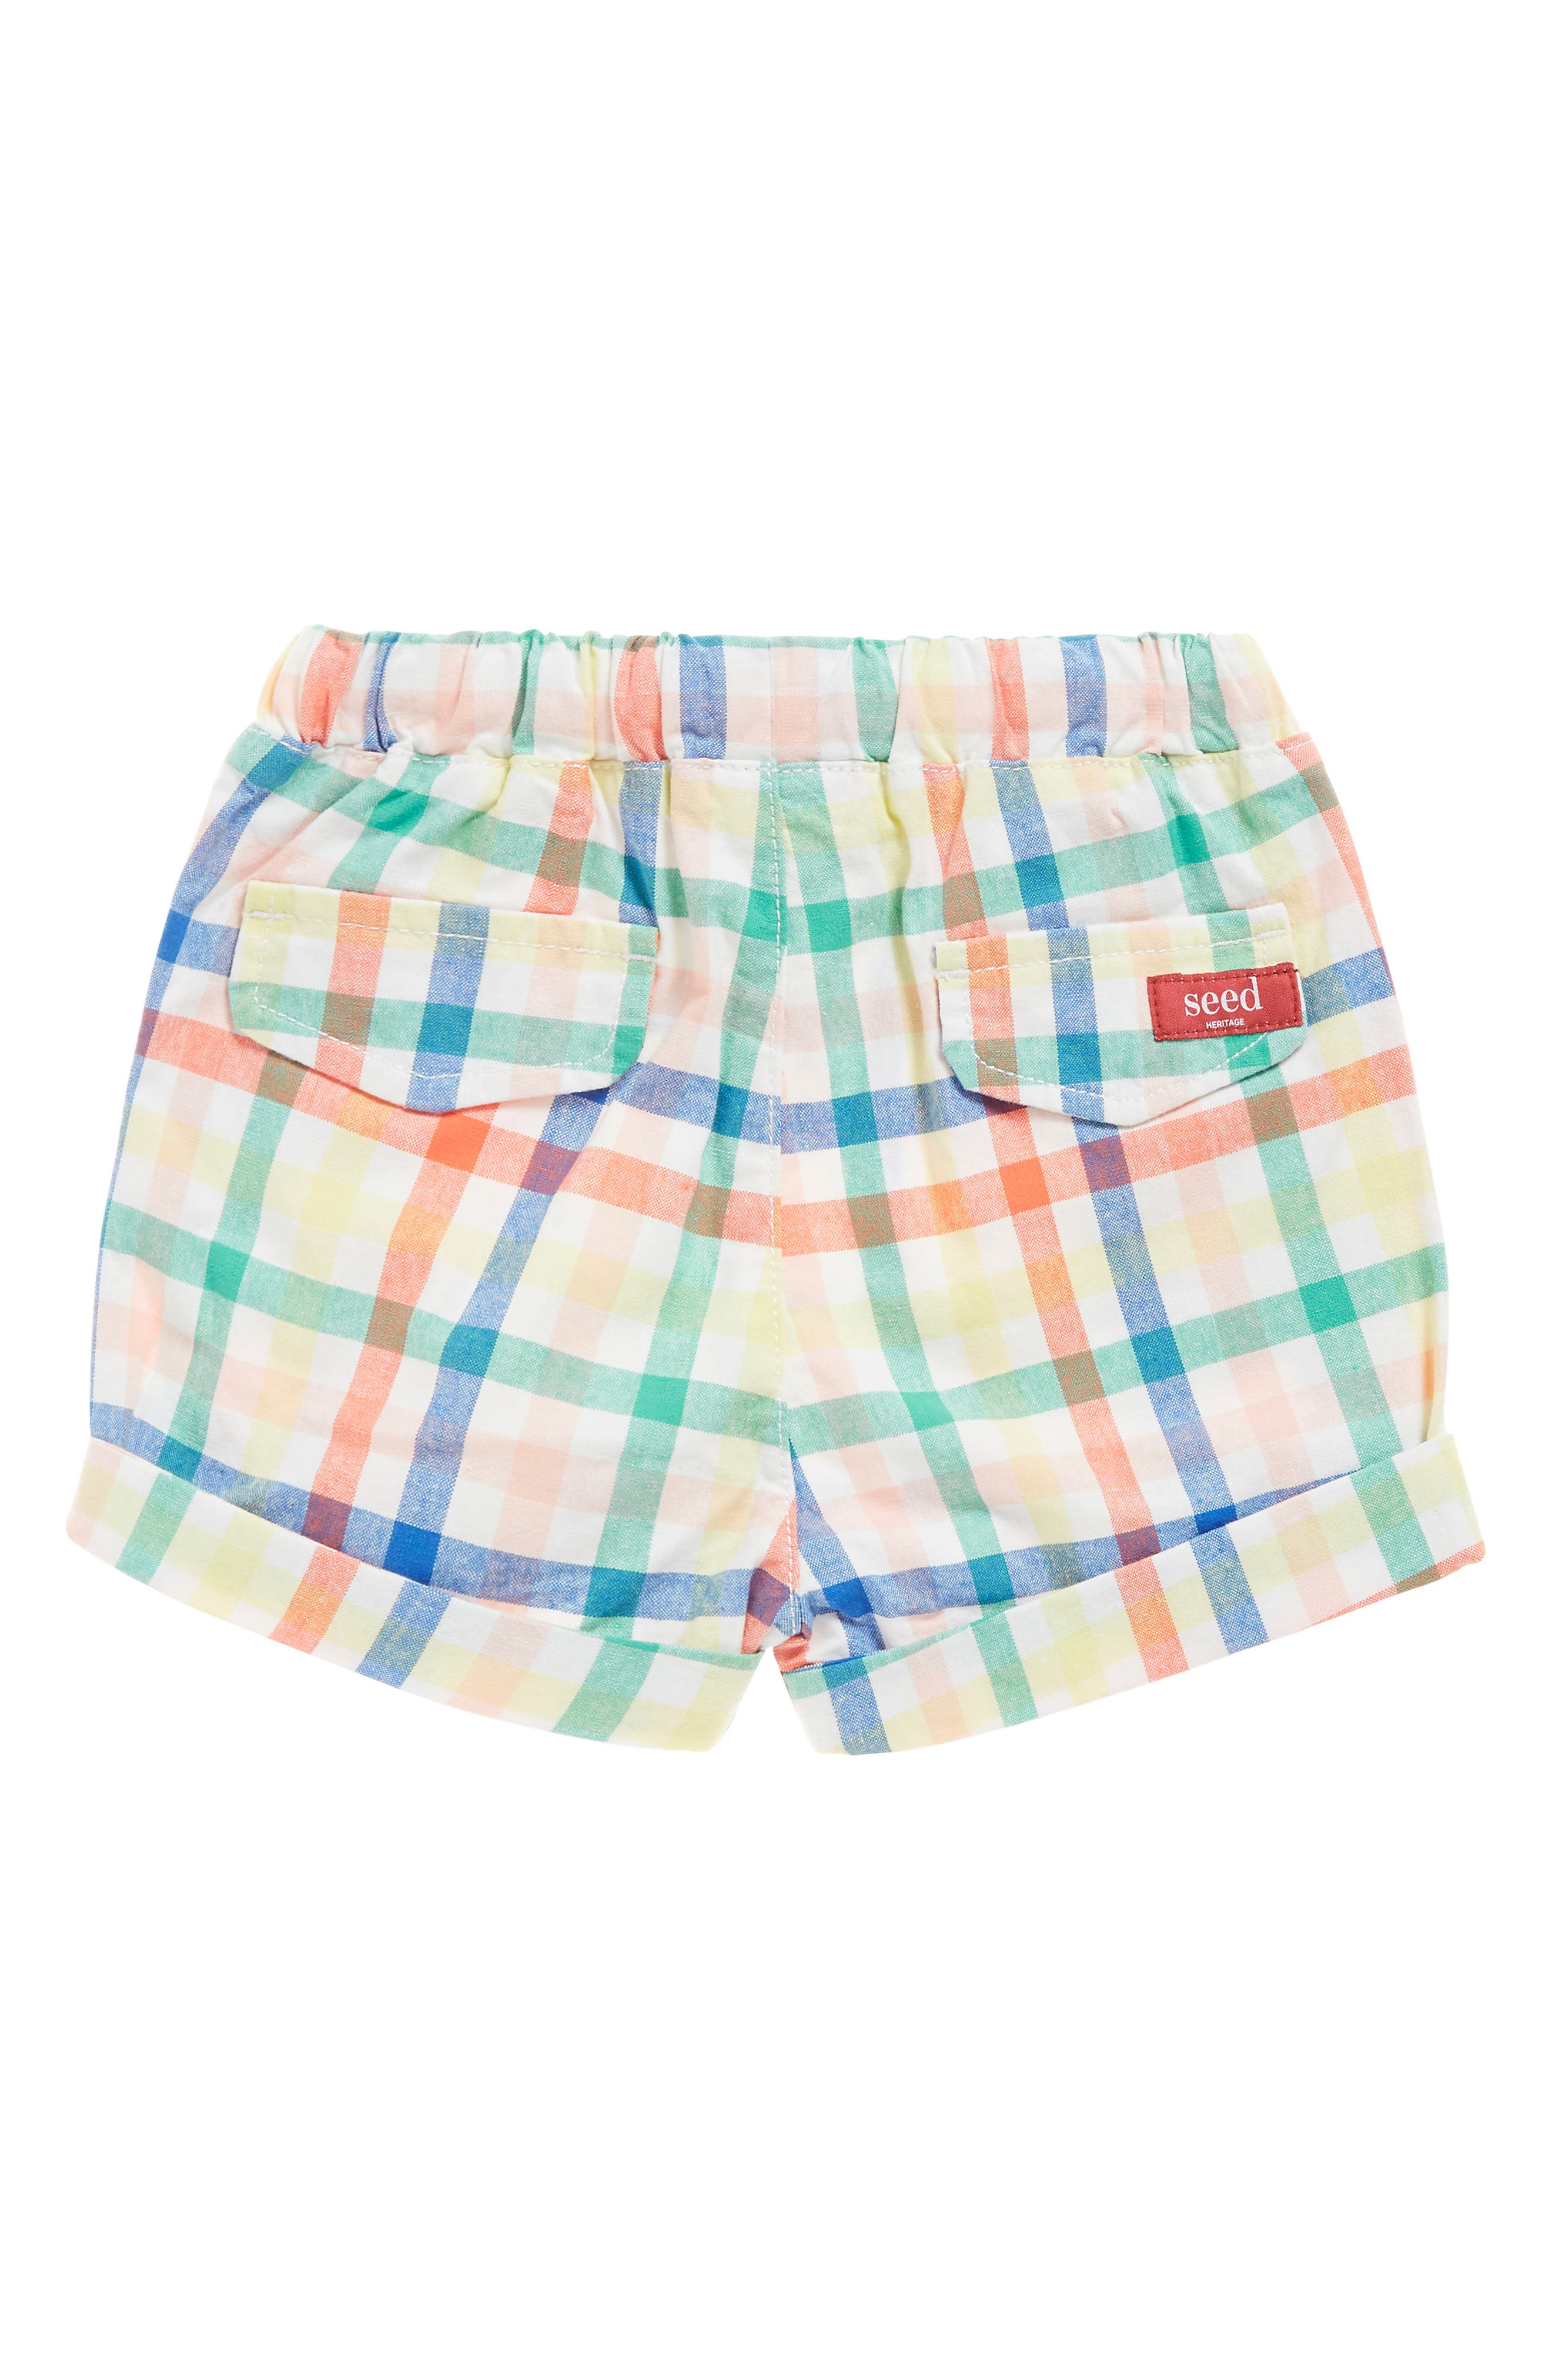 SEED HERITAGE,                             Plaid Woven Shorts,                             Alternate thumbnail 2, color,                             MULTI